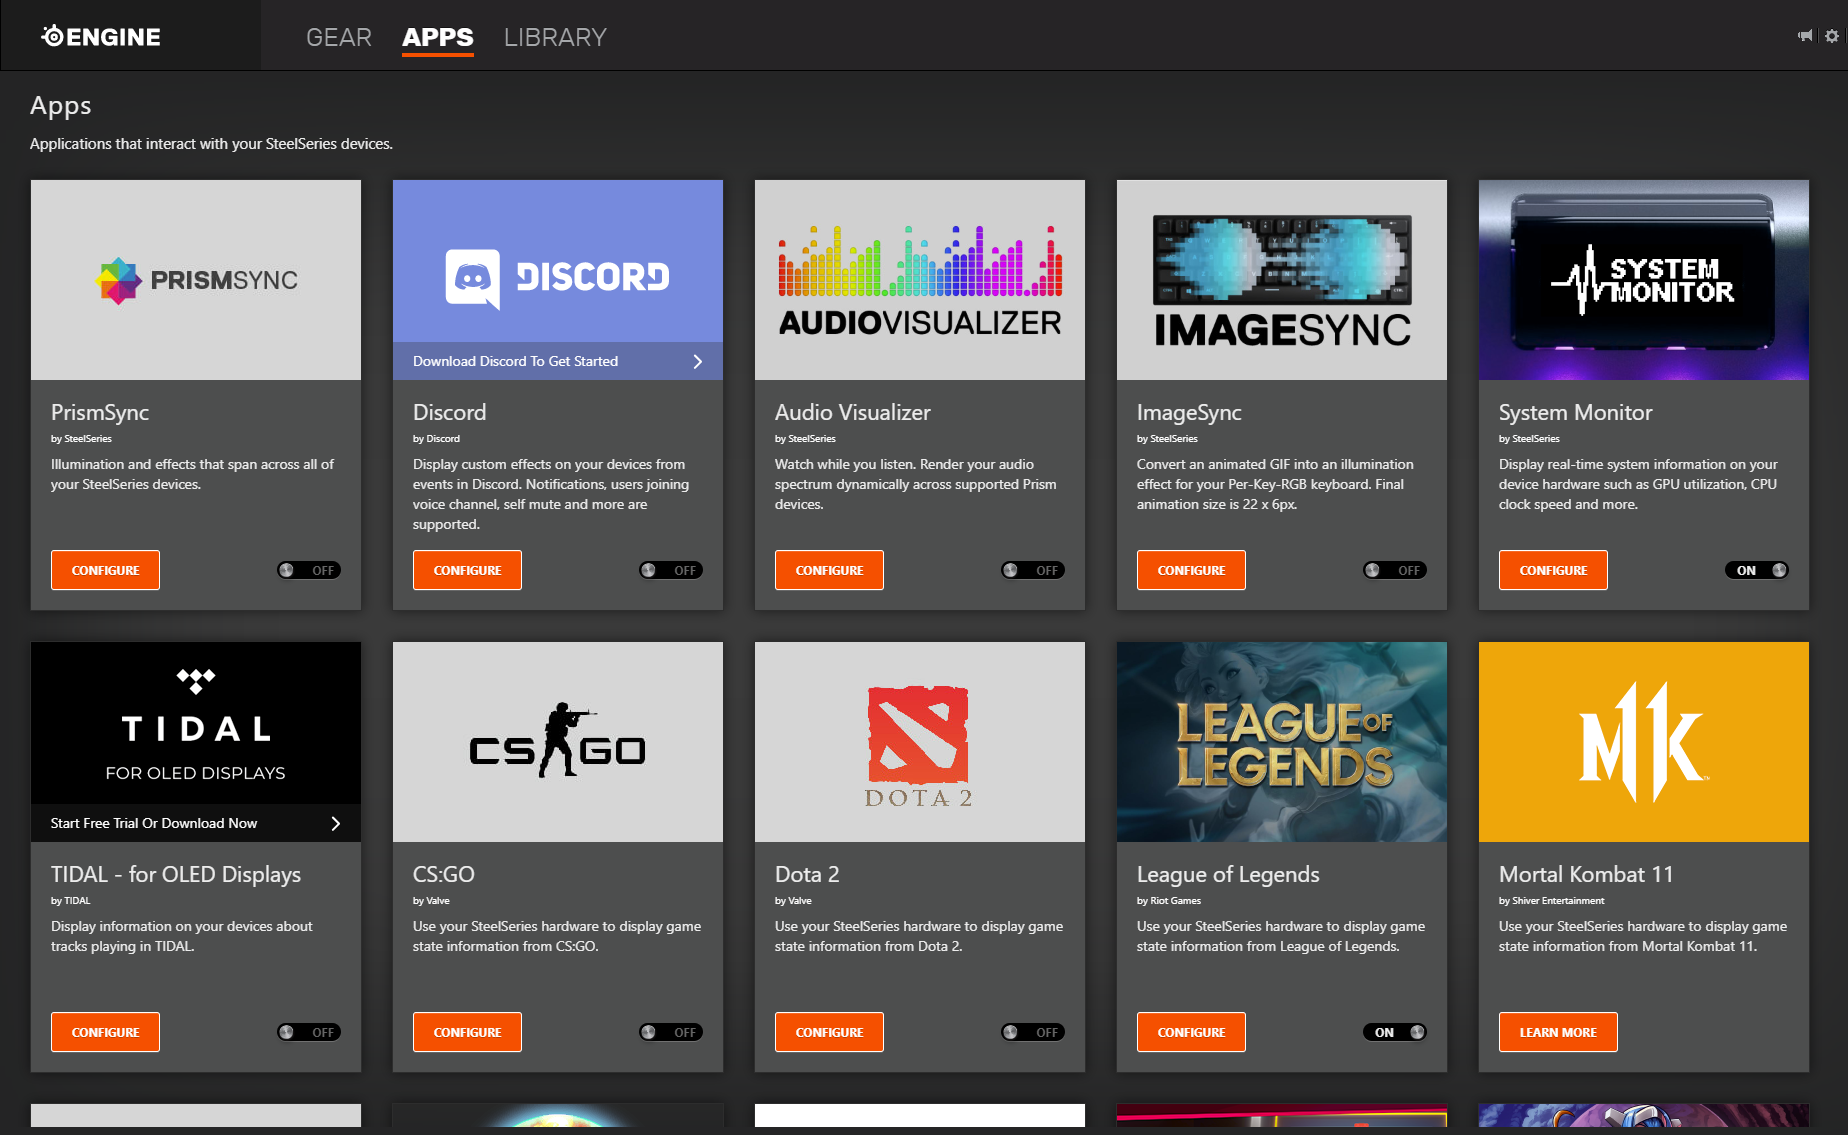 Supported programs in SteelSeries Engine including League of Legends